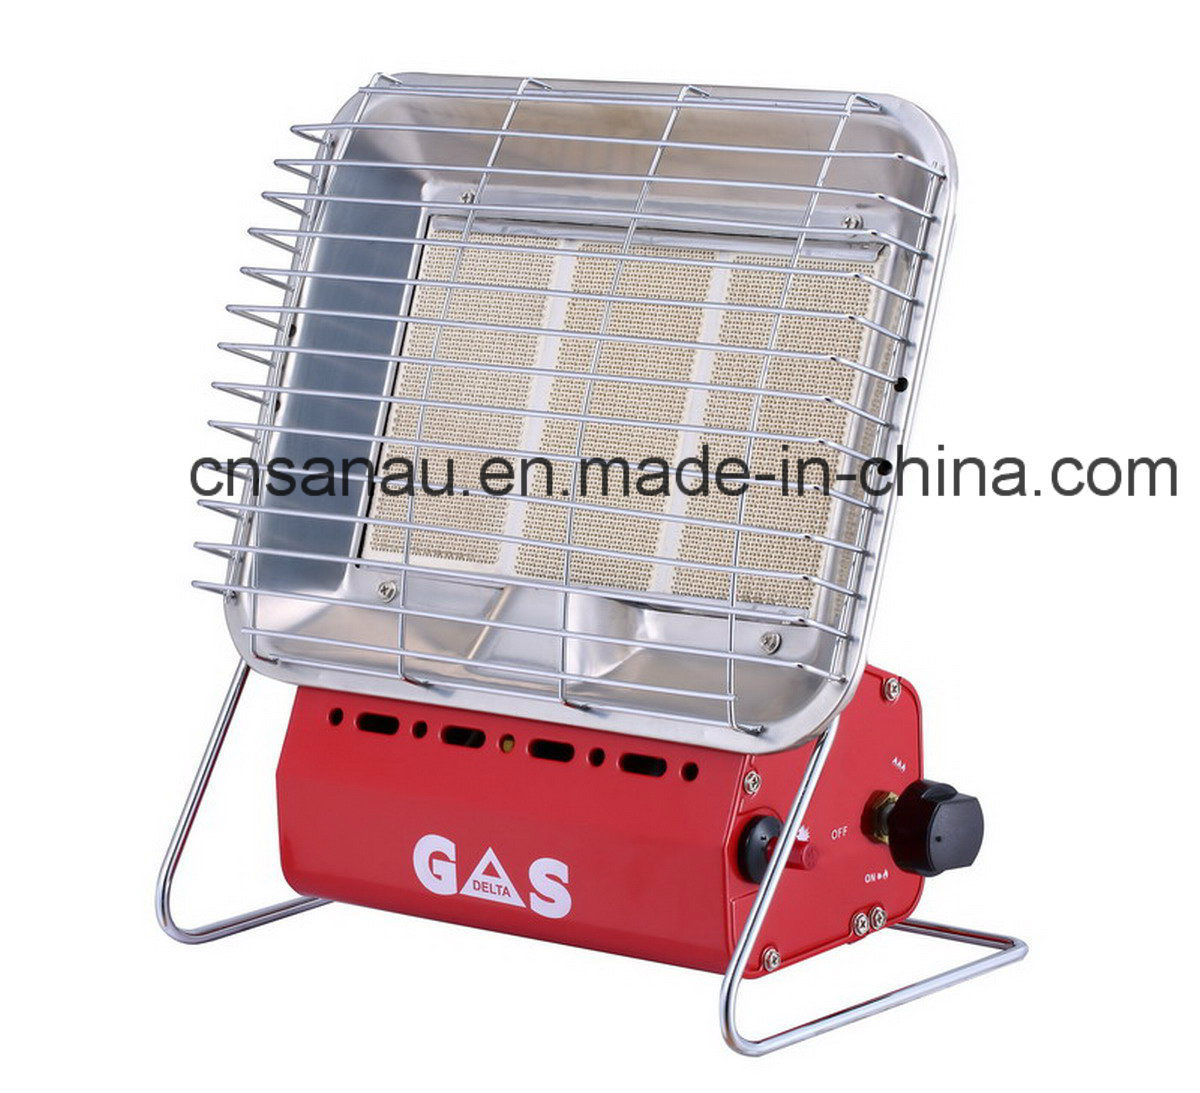 Mobile Gas Heater with 3plate Hight Efficiency Ceramic Burner Sn13-Bf